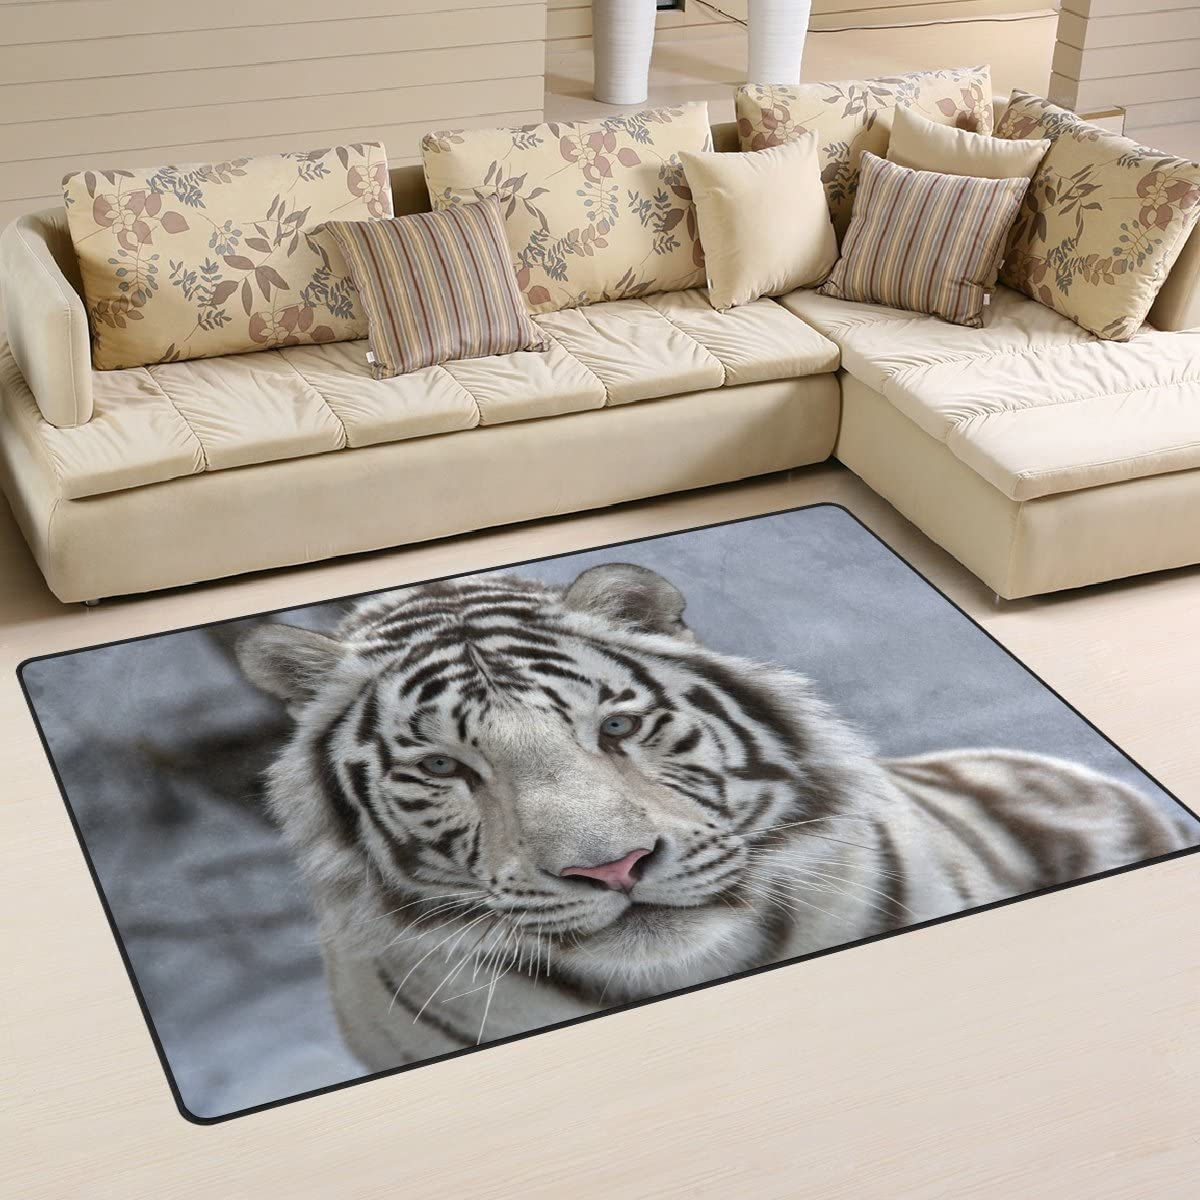 Yochoice Non-slip Area Rugs Home Decor, Hipster White Benga Tiger Animal Kingdom Floor Mat Living Room Bedroom Carpets Doormats 31 x 20 inches